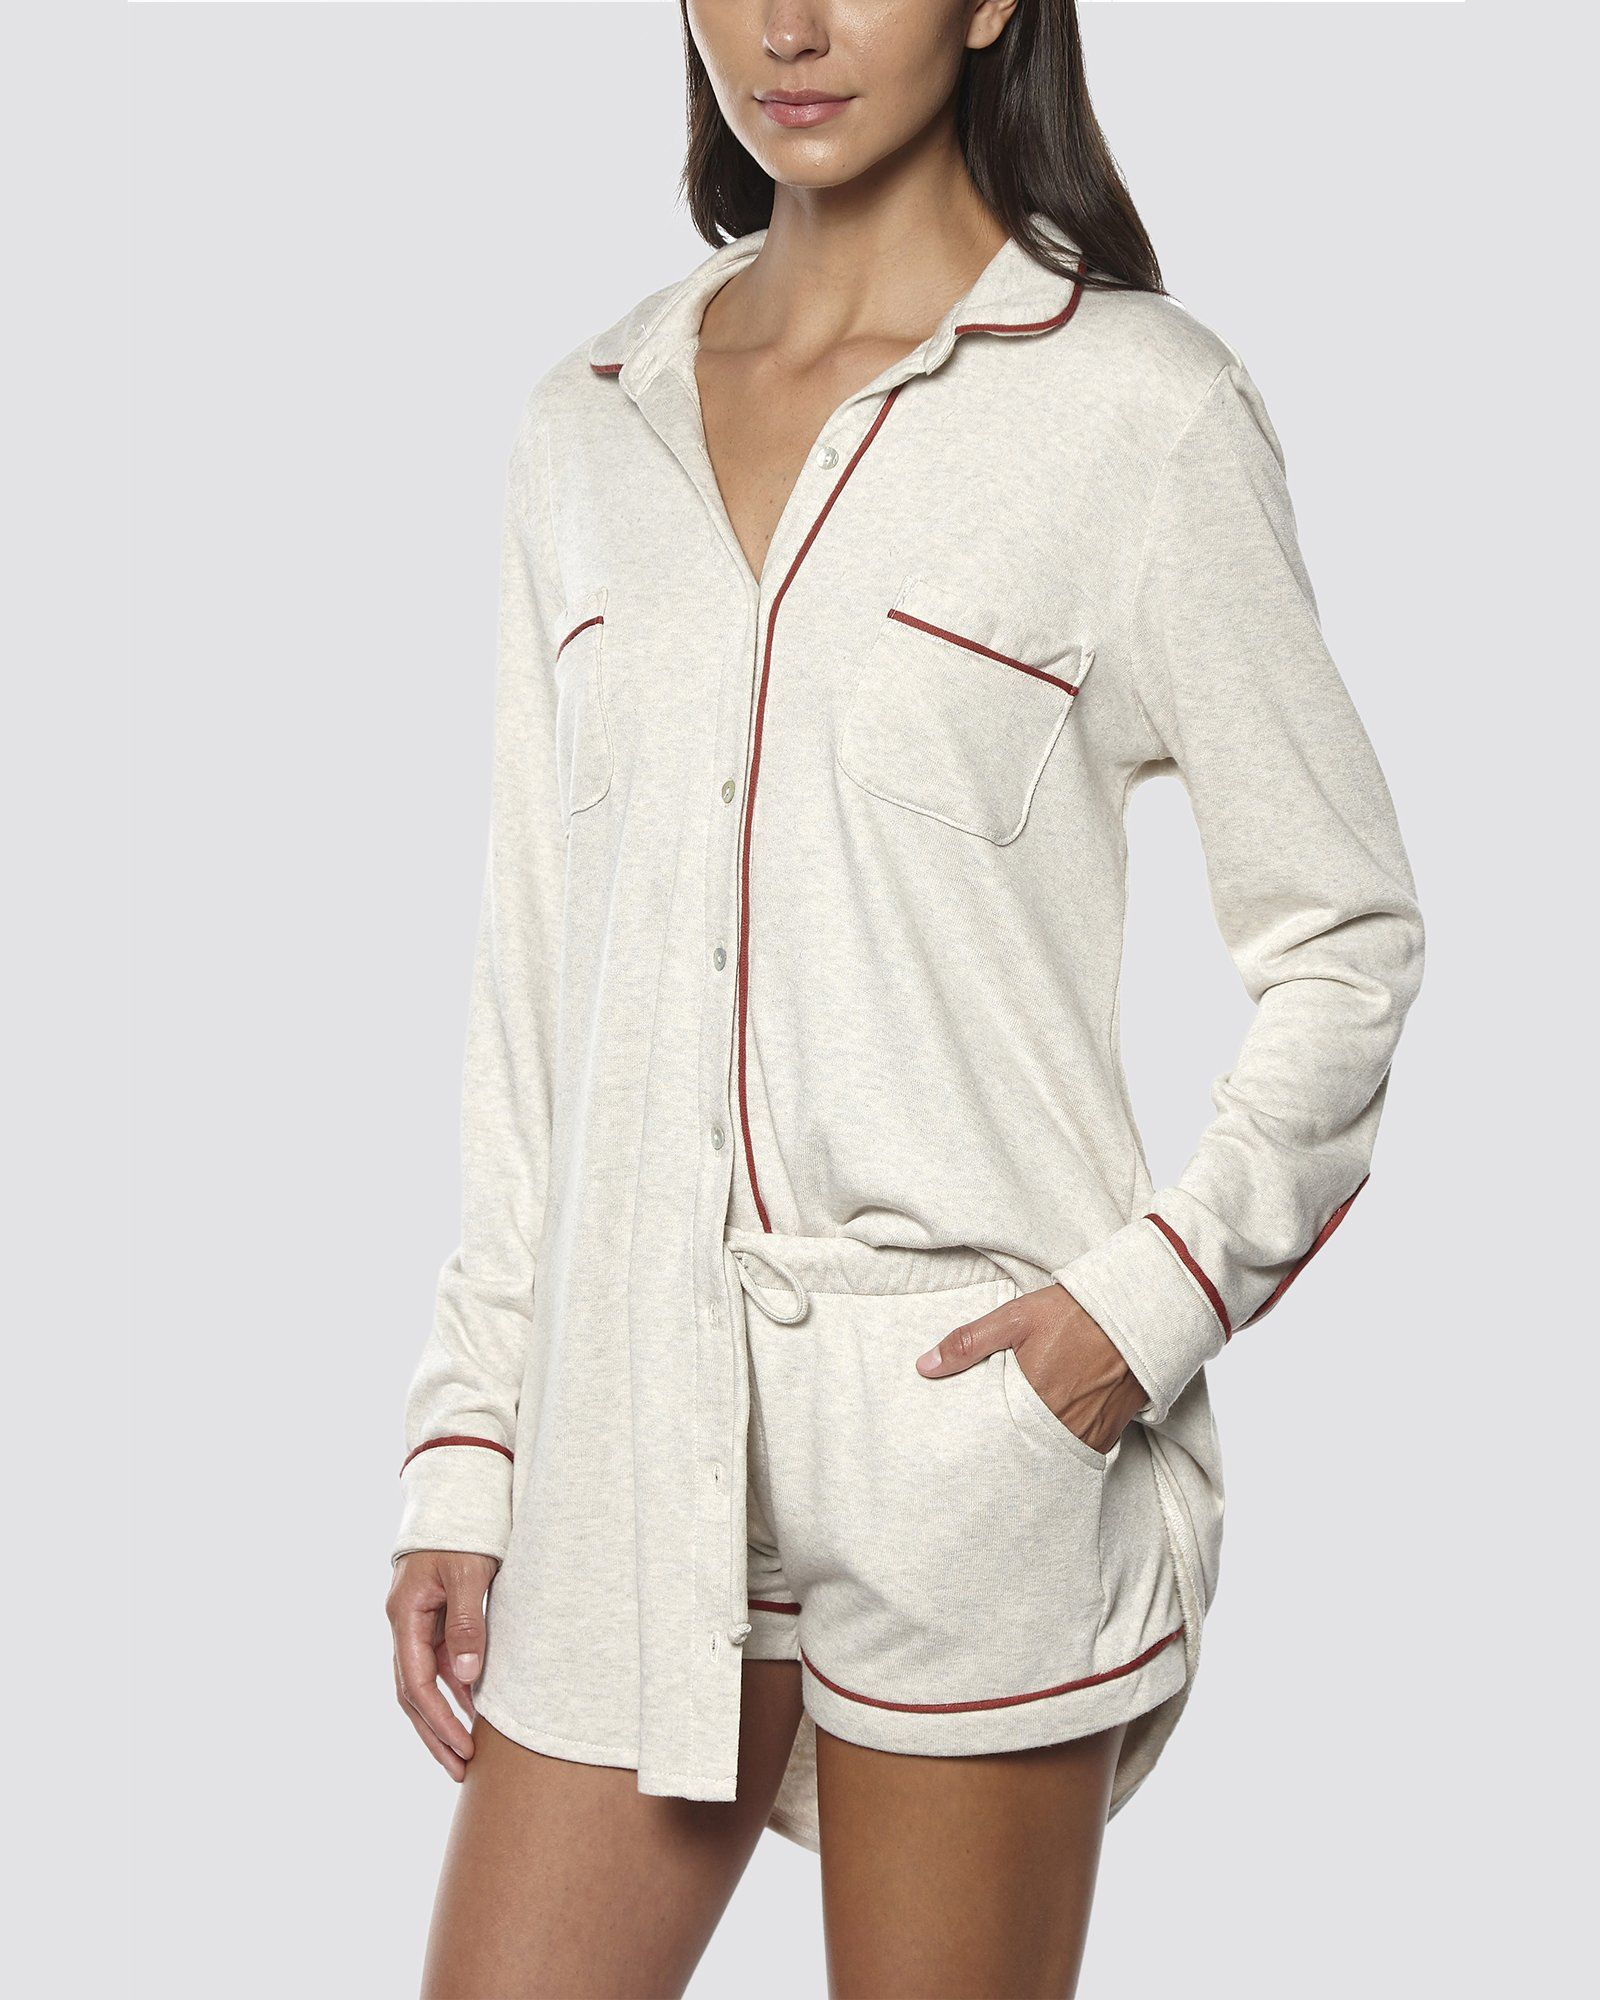 The Sleep Set bleusalt.com $180.00 SHOP NOW Bleusalt's mission is simple: To create luxurious, comfortable clothing without harming the environment. Bleusalt's signature fabric is made from beechwood, which entirely vegan.